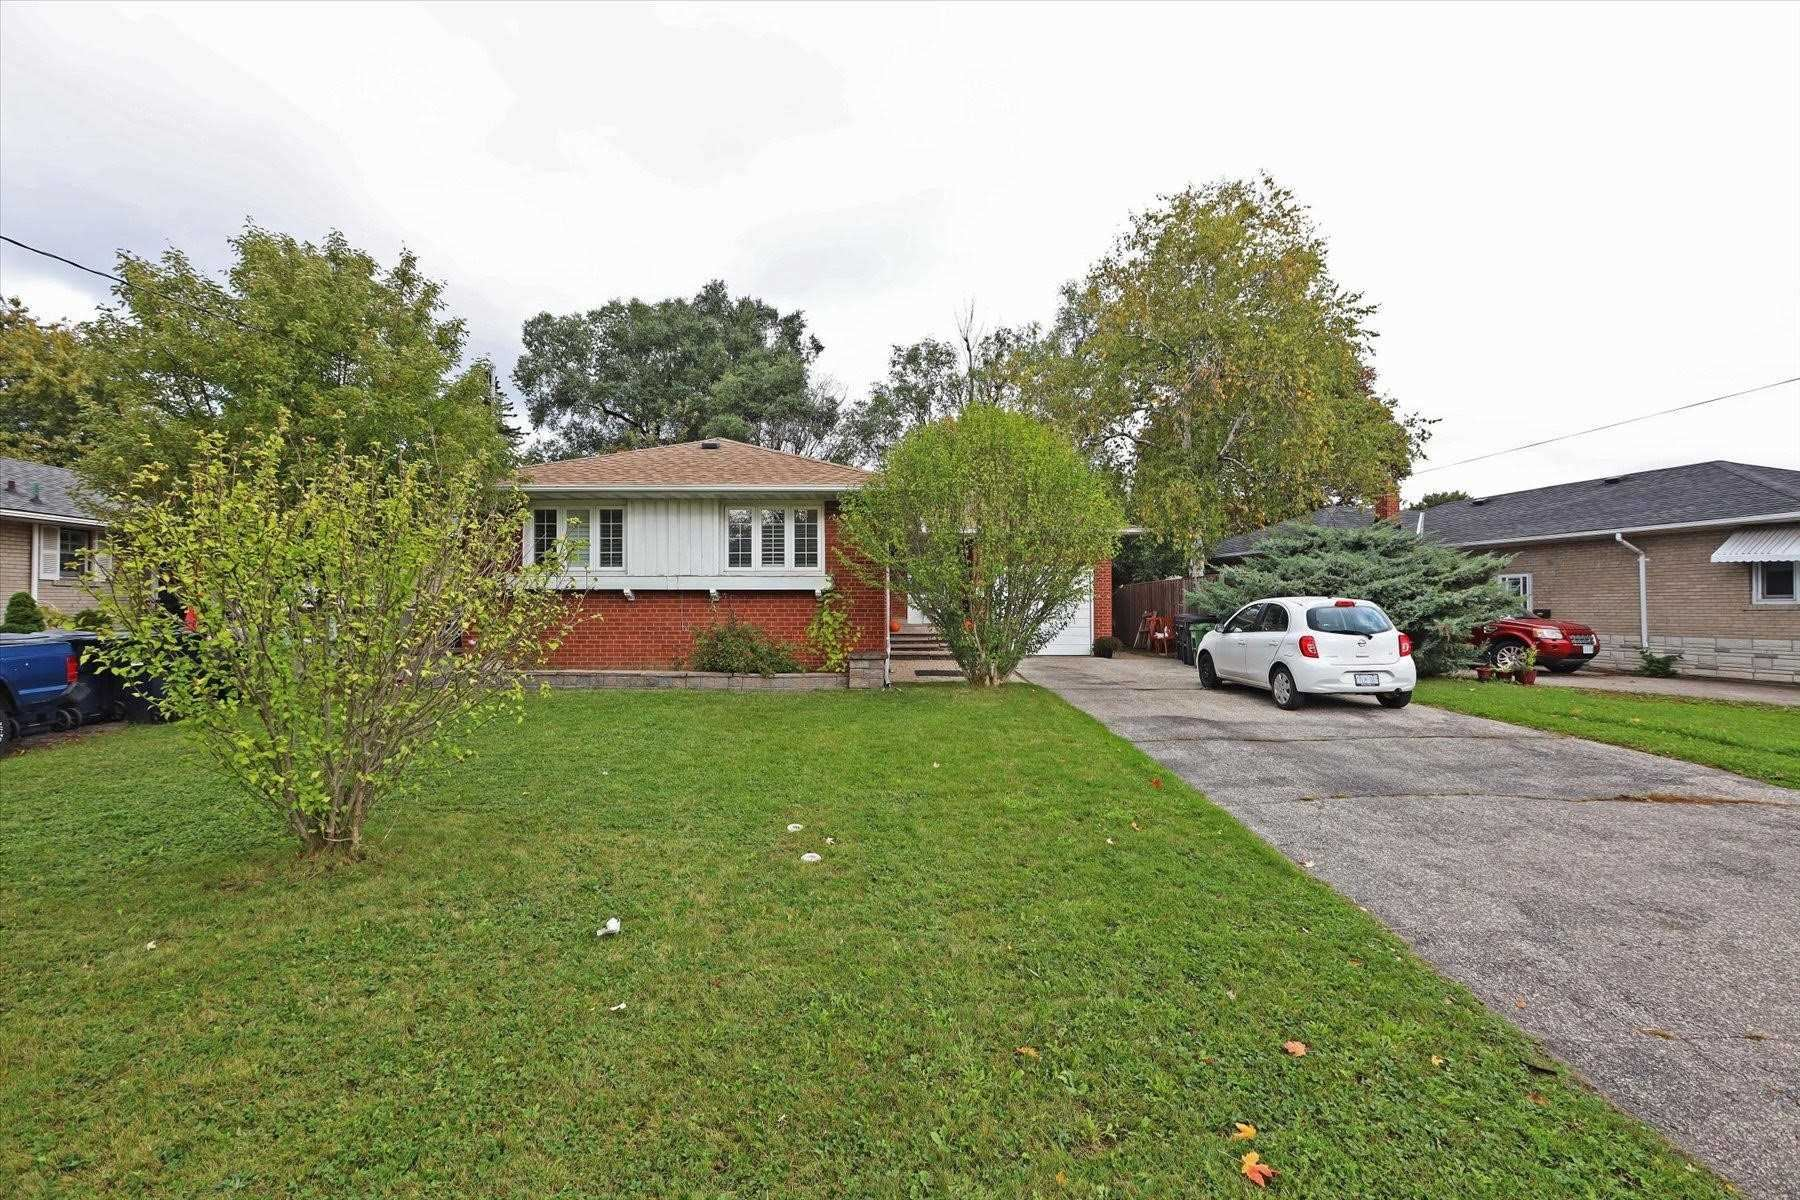 48 Sloane Ave, Toronto, ON M4A2A5 - MLS#: C5407496